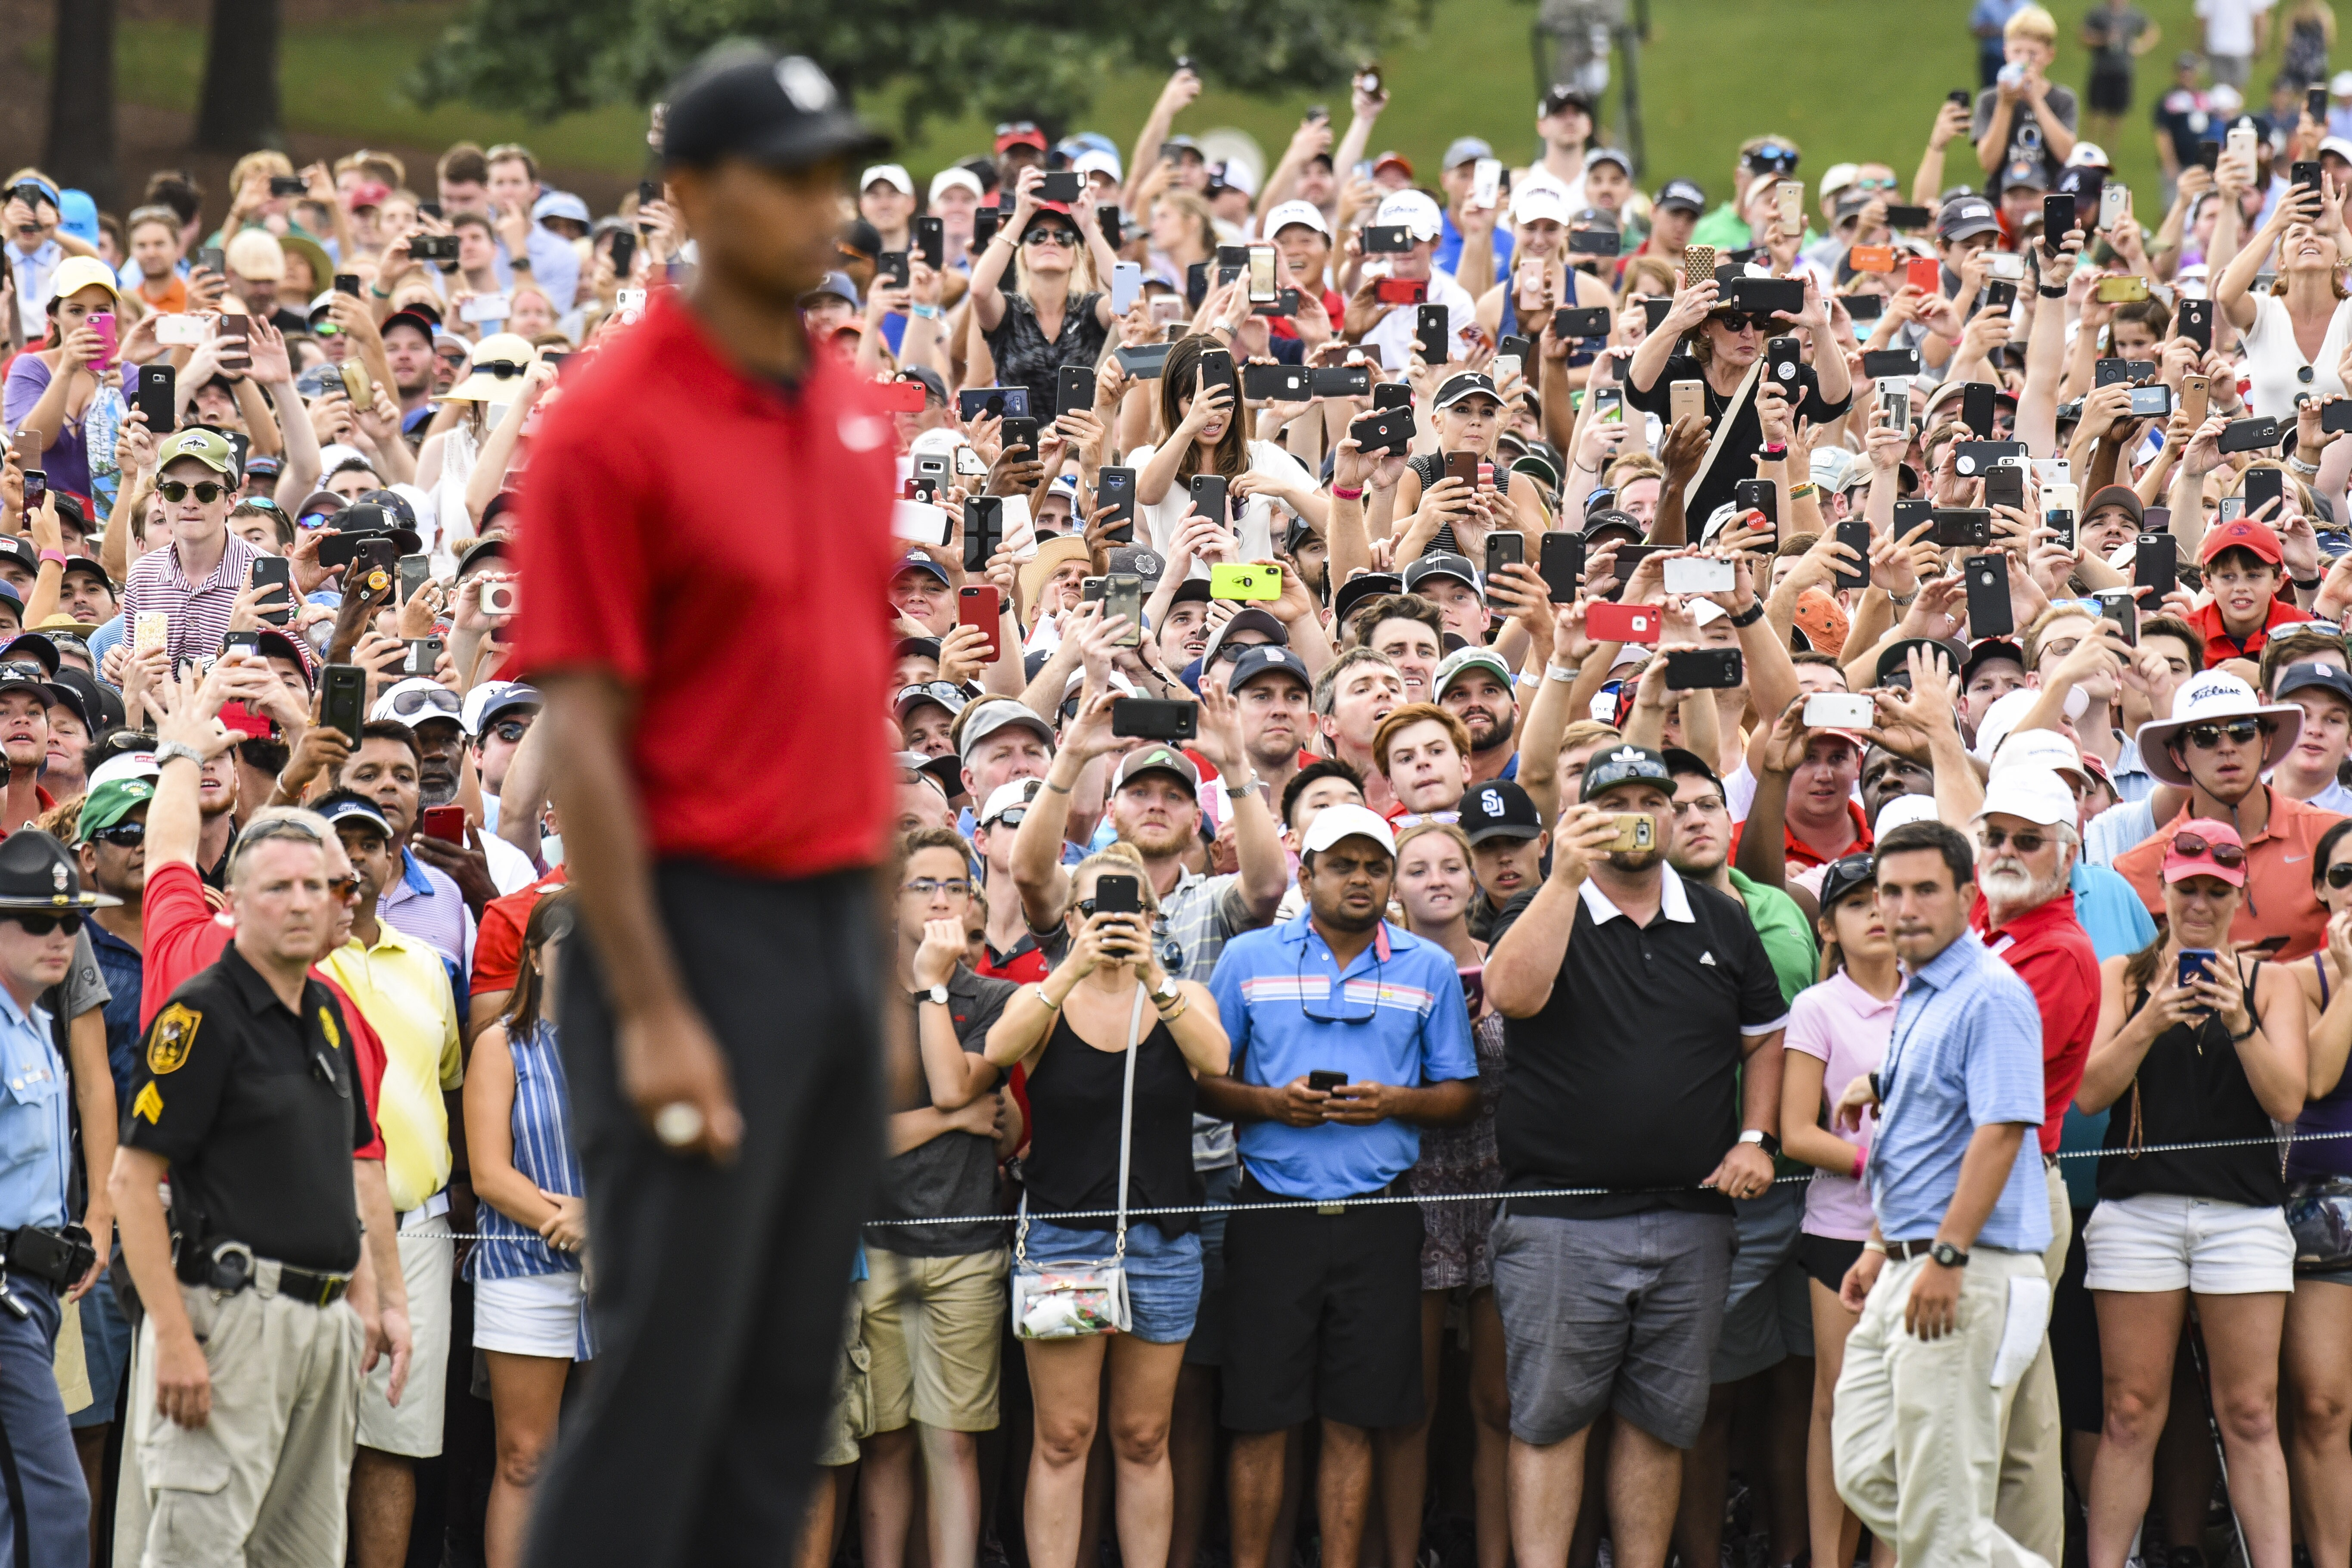 aaa14f8bbdd4c The Tiger Effect Returns at East Lake Golf Club Where Tiger Woods ...